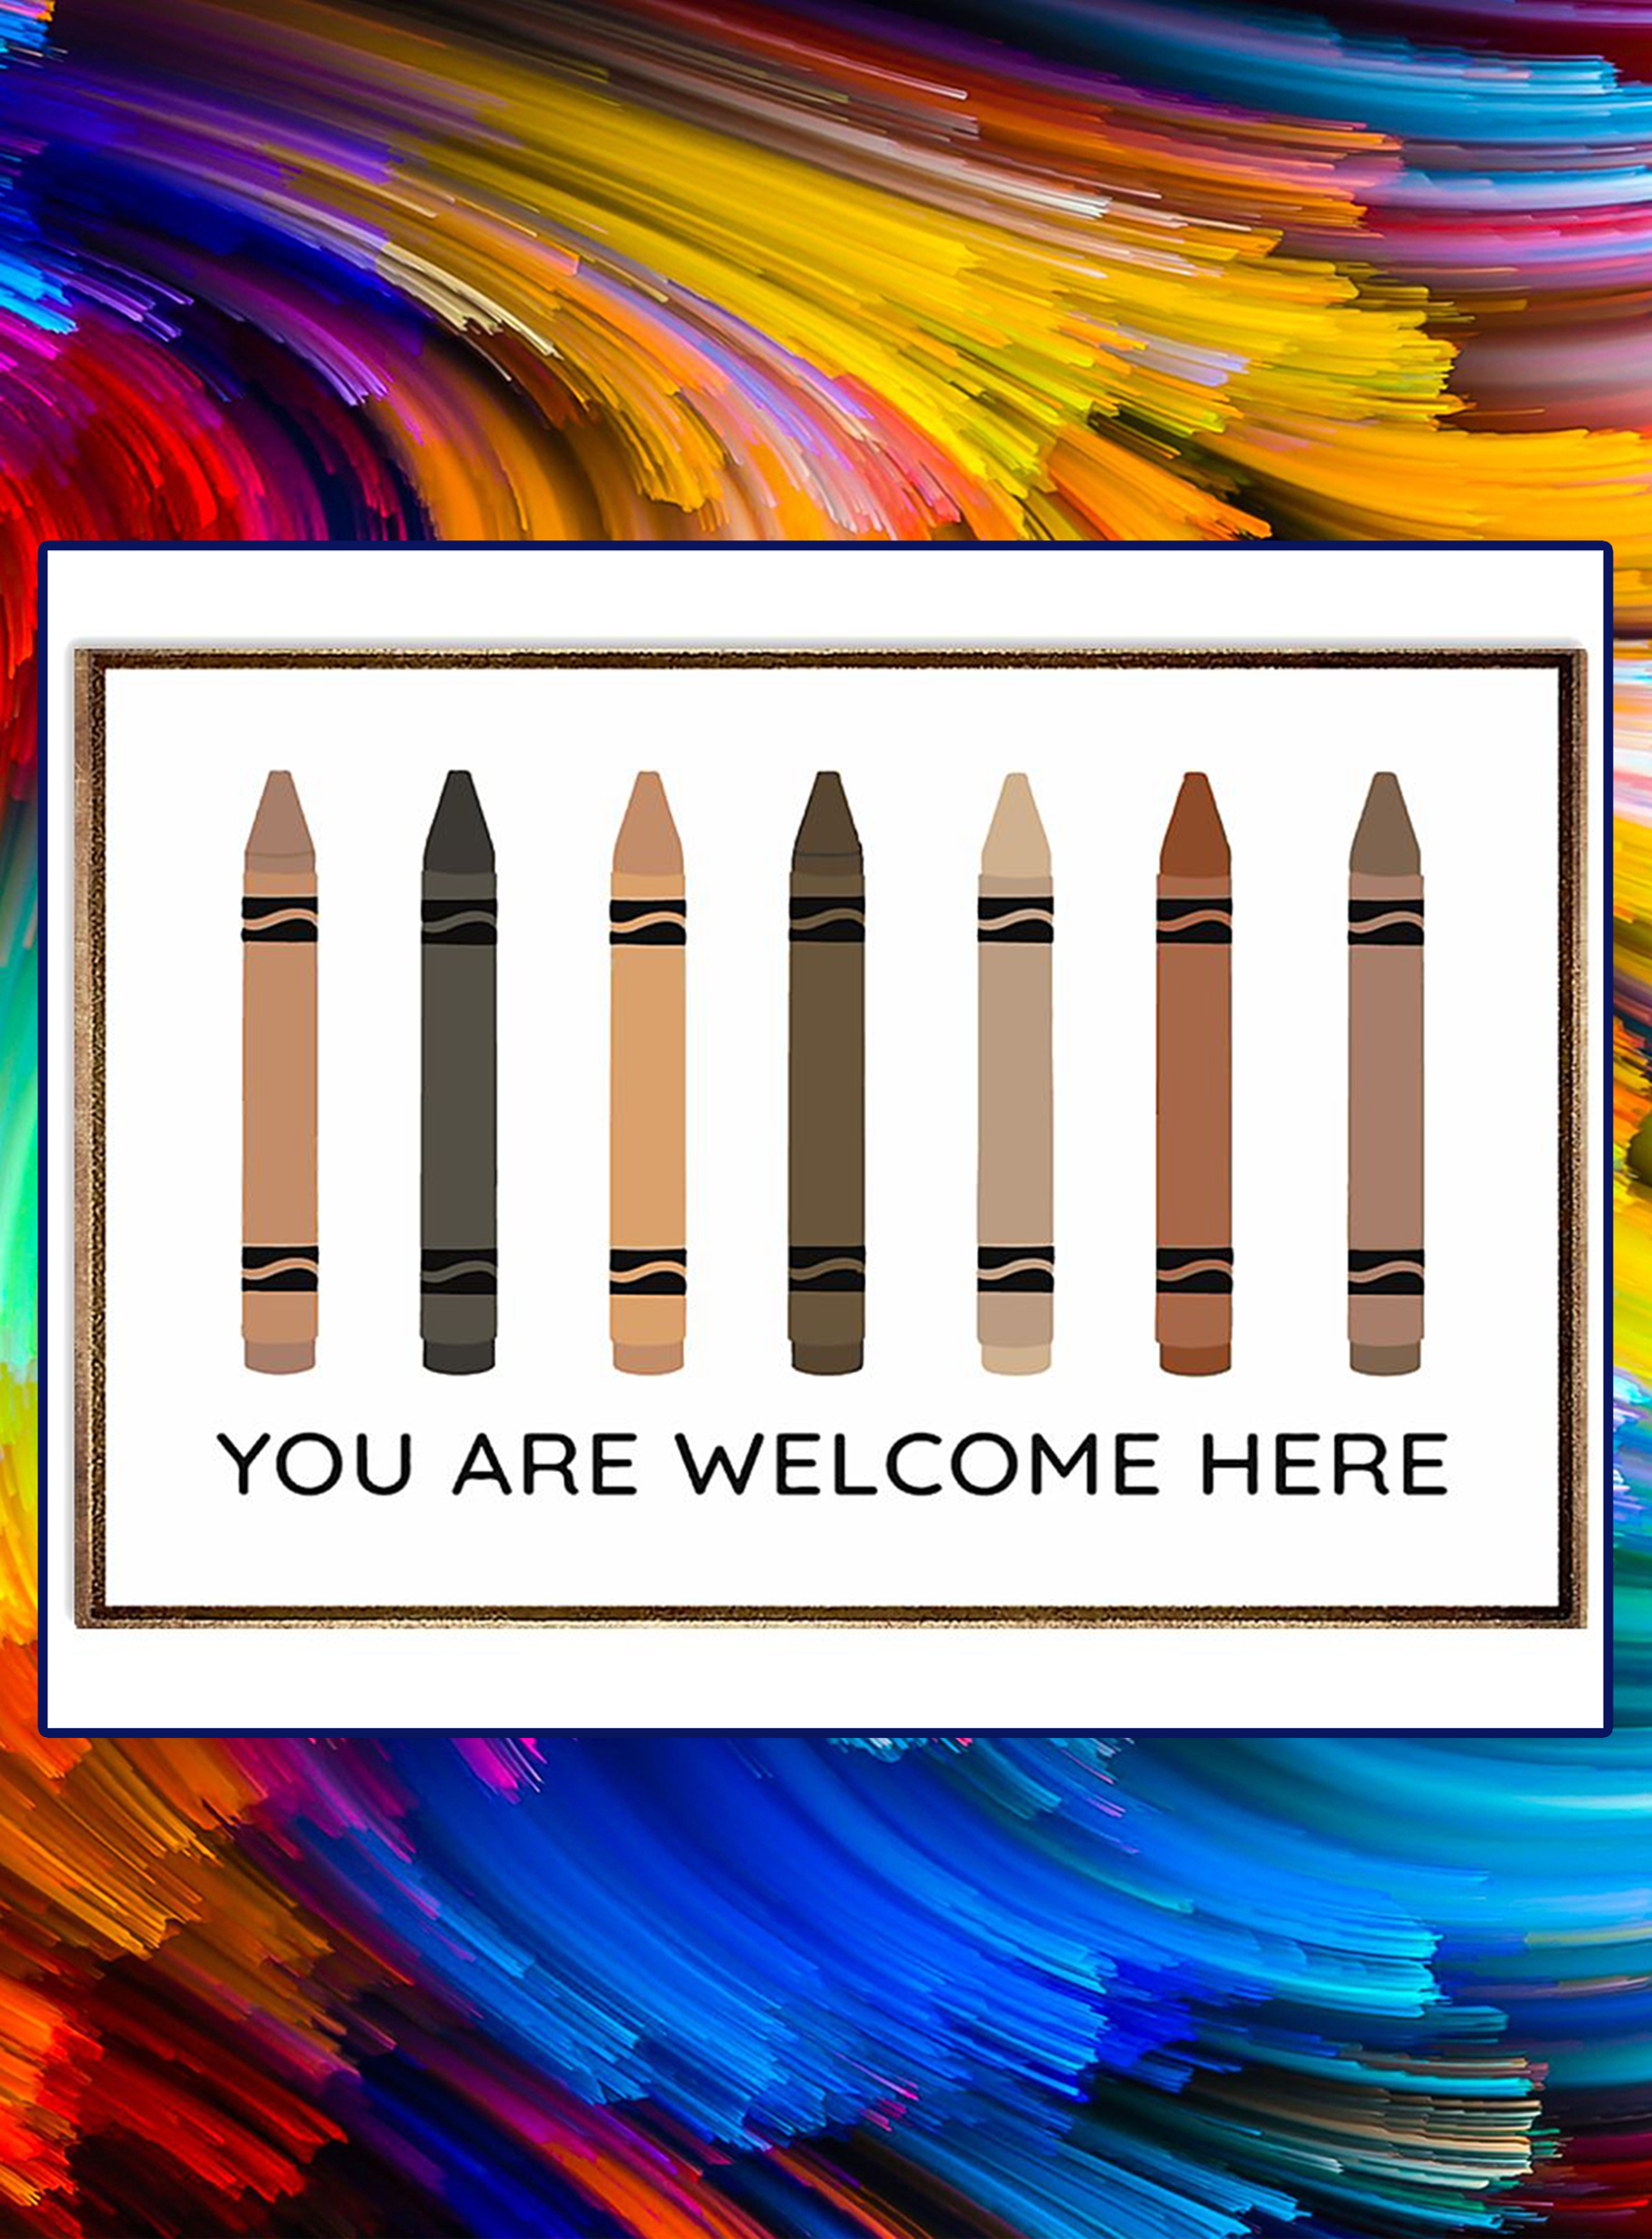 Crayons You are welcome here poster - A2